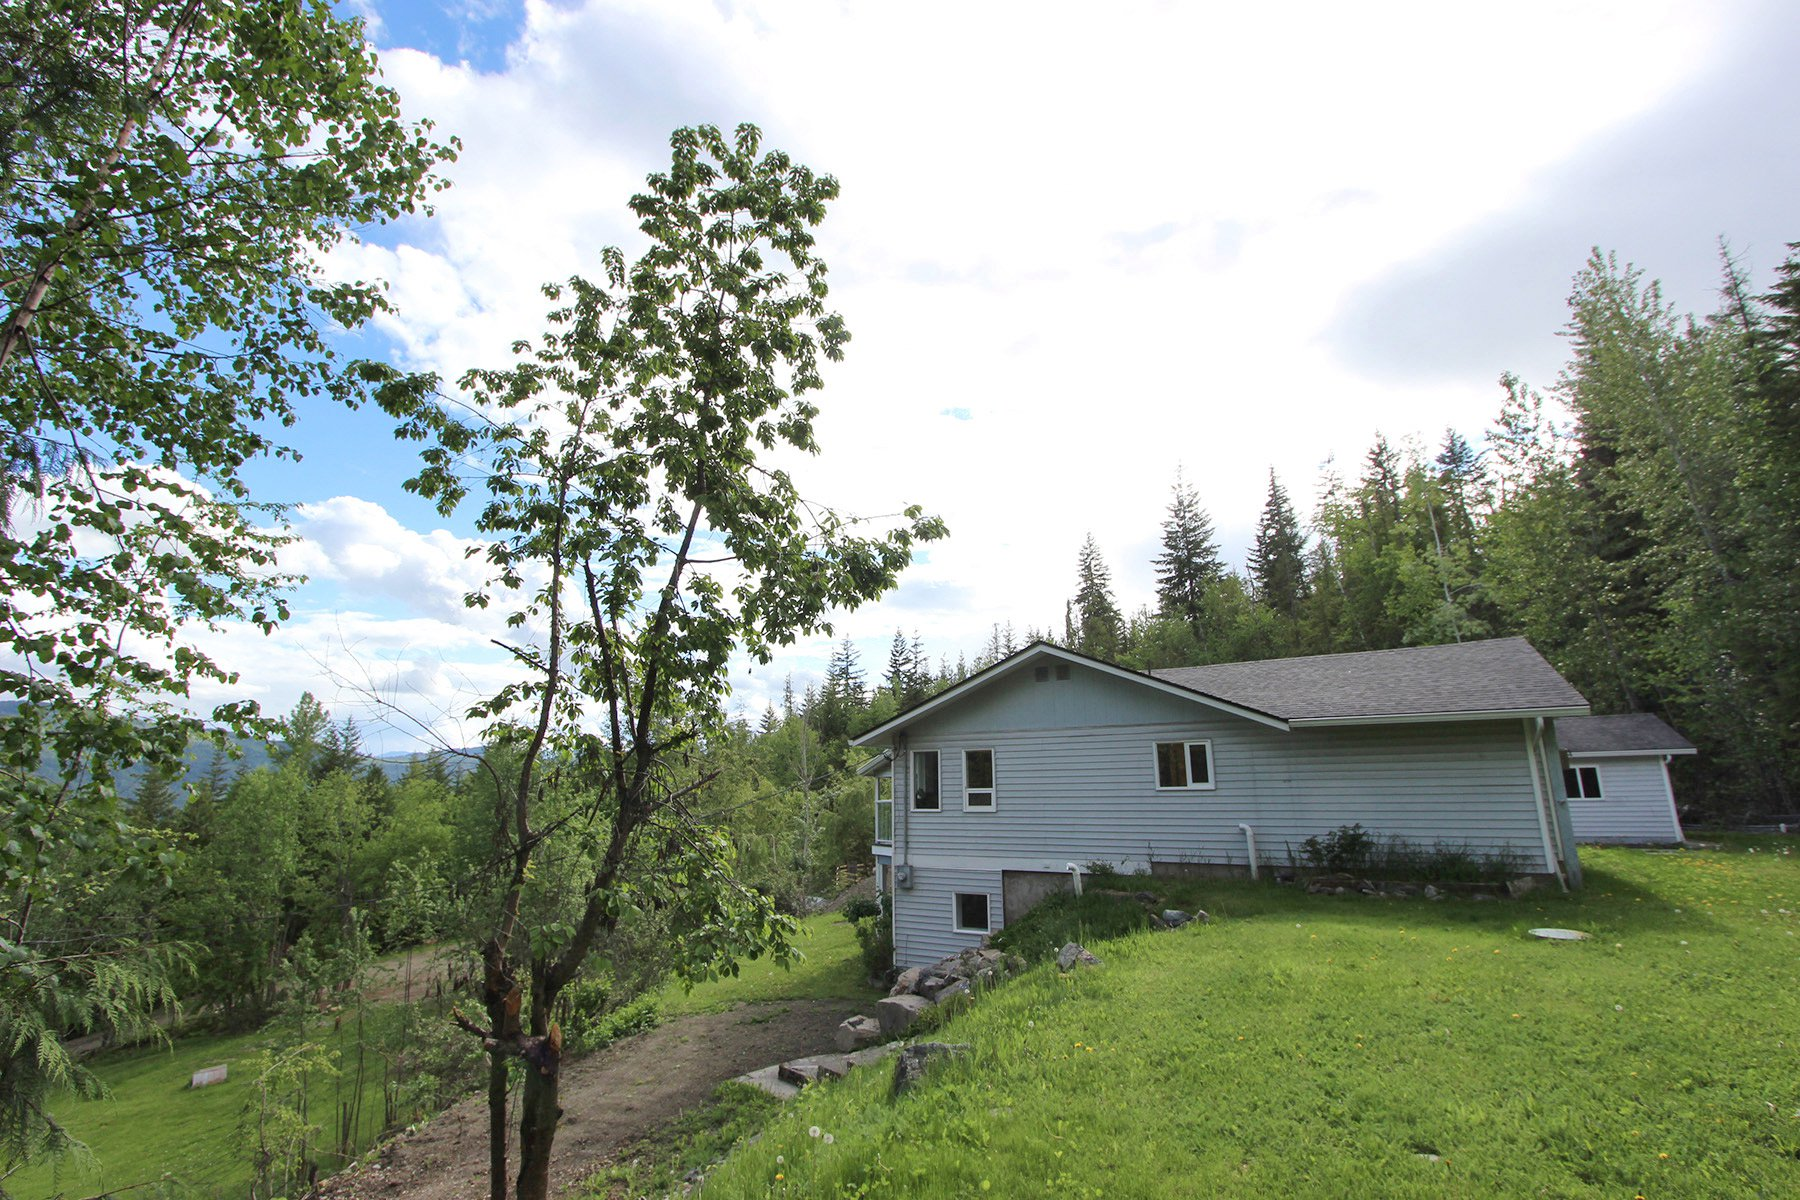 Photo 10: Photos: 6831 Magna Bay Drive in Magna Bay: House with Acreage for sale : MLS®# 10205520